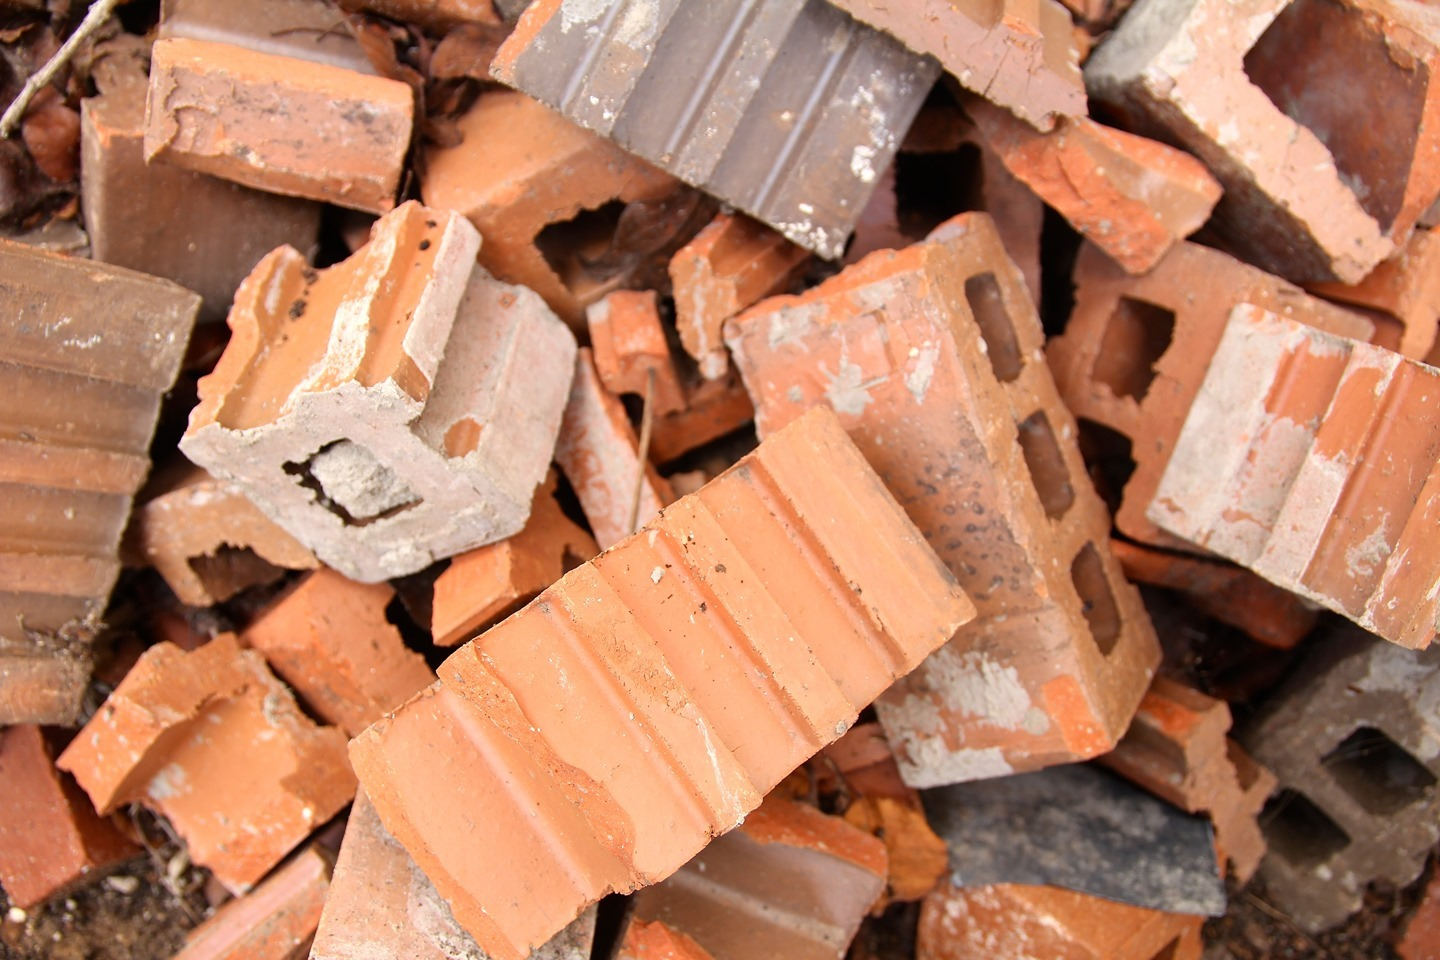 bricks crushed into pieces